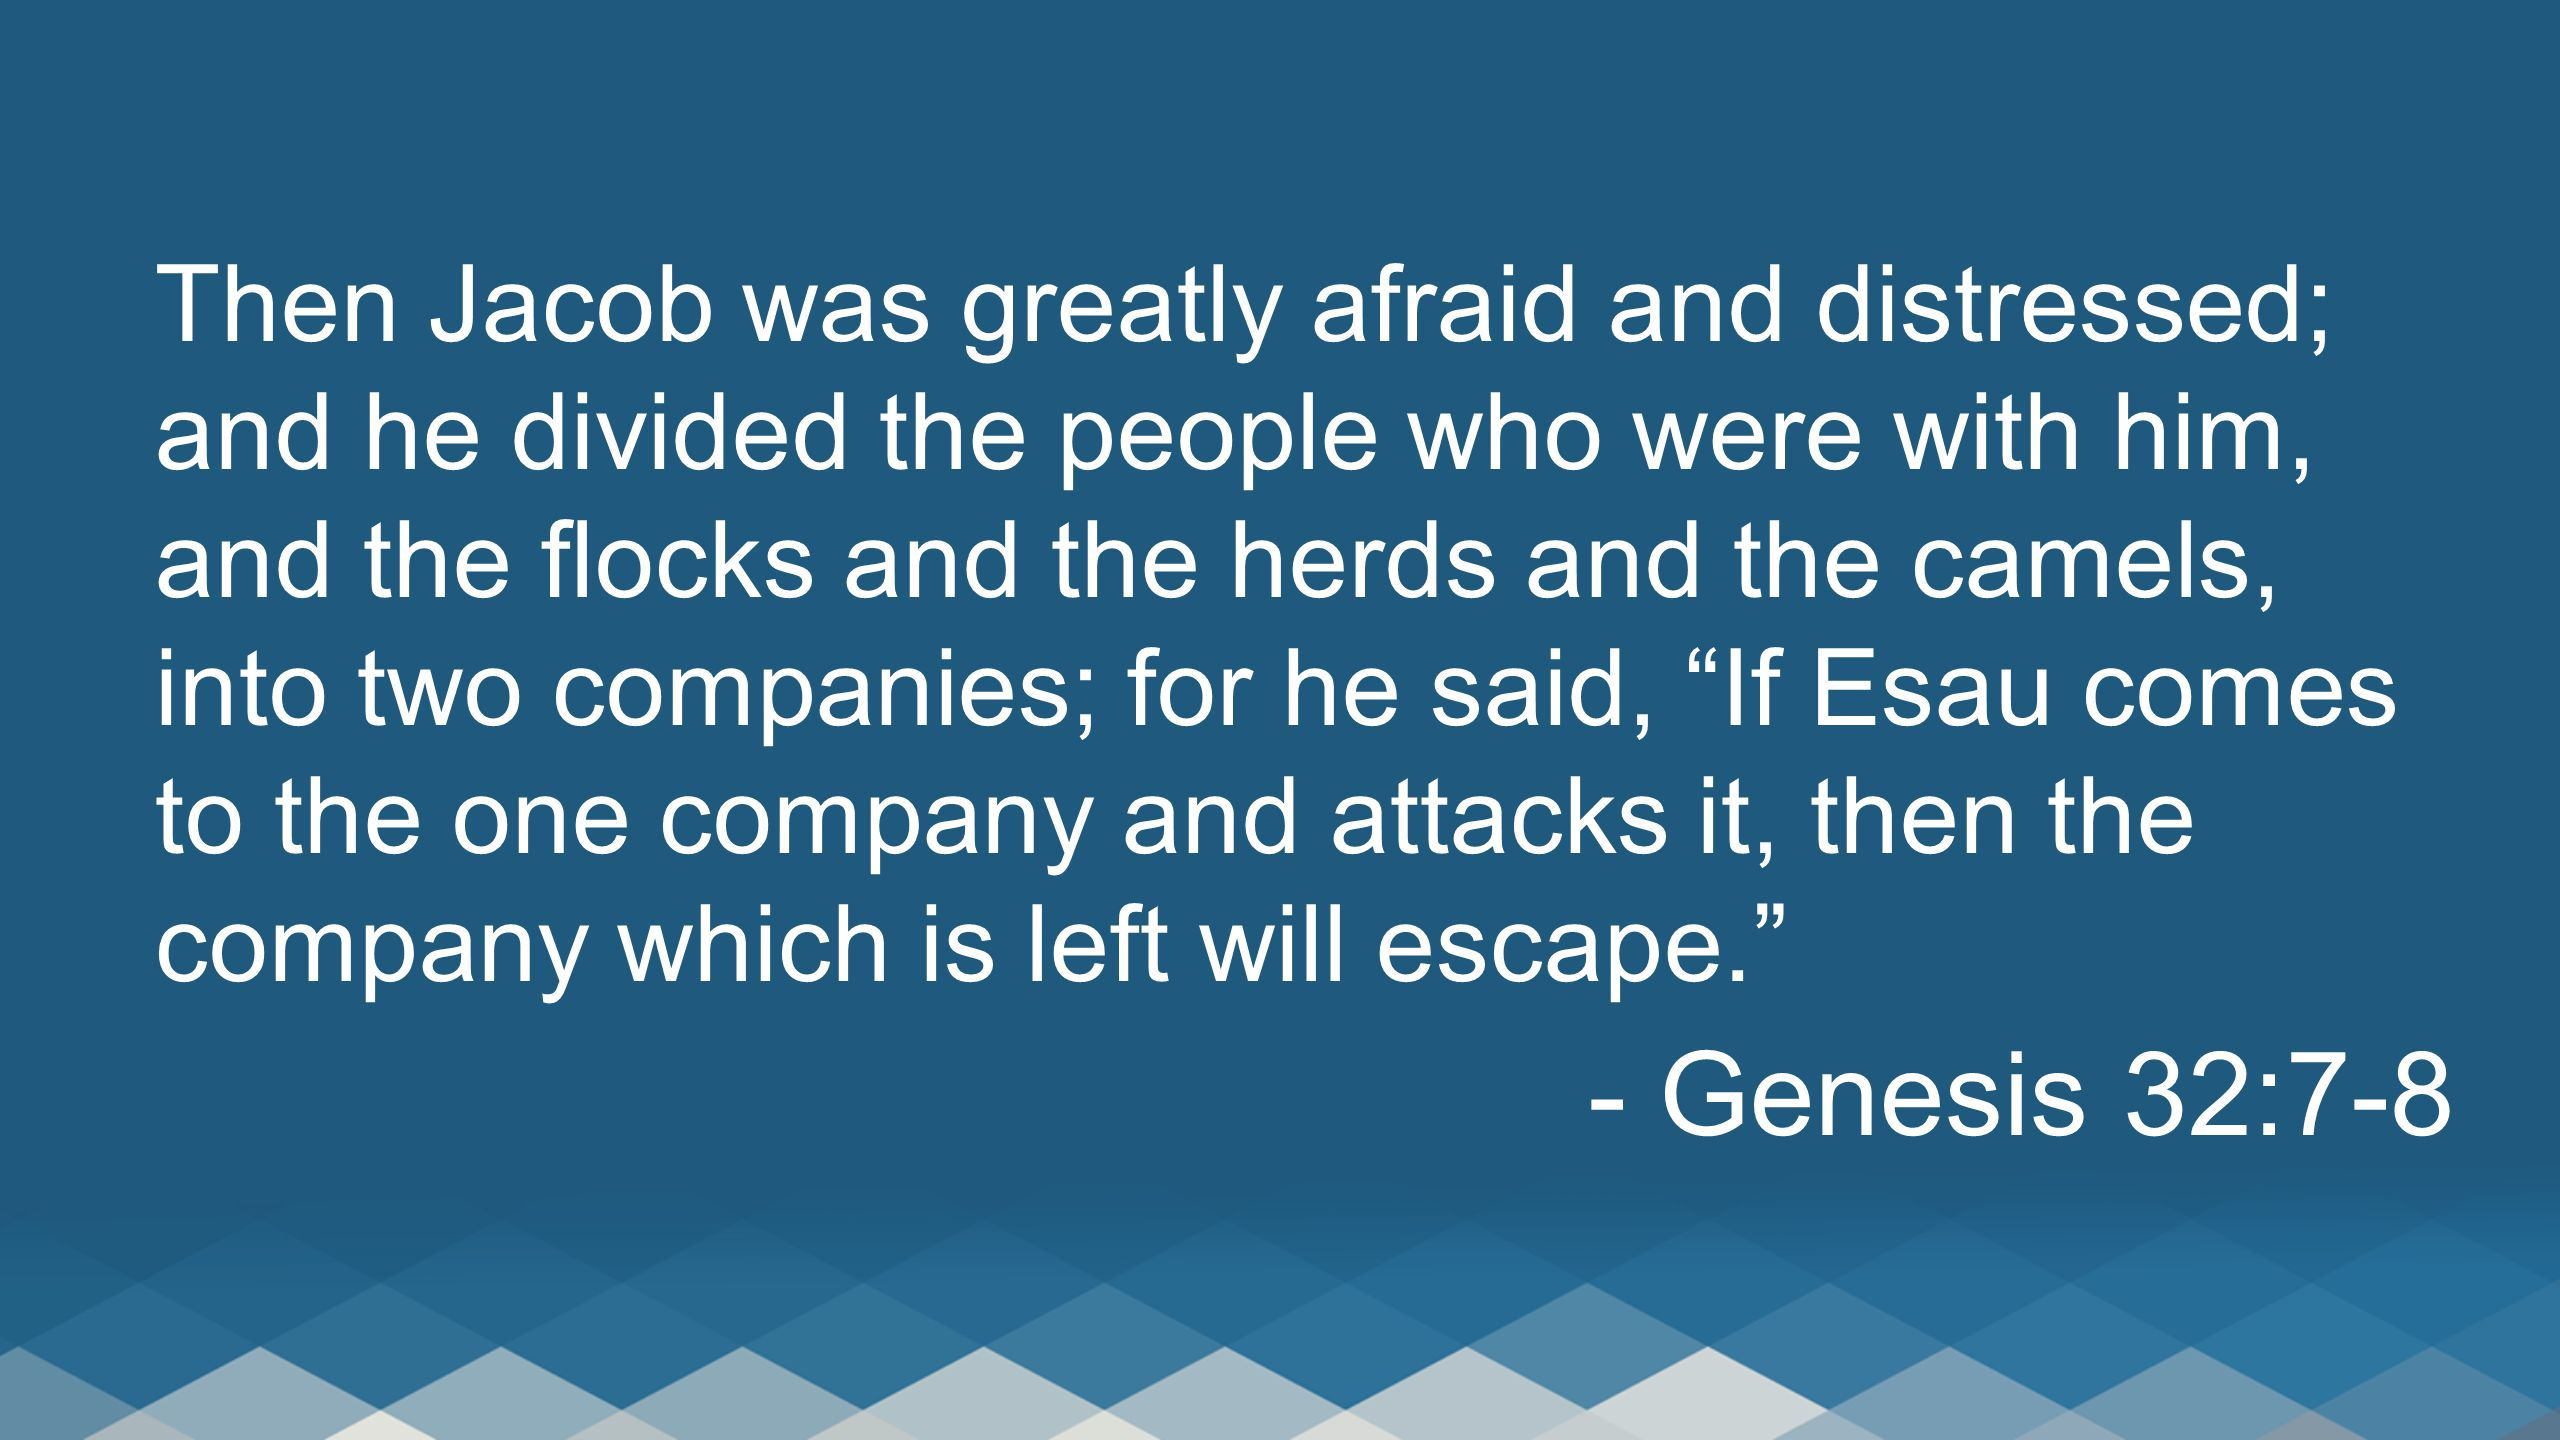 Then Jacob was greatly afraid and distressed; and he divided the people who were with him, and the flocks and the herds and the camels, into two companies; for he said, If Esau comes to the one company and attacks it, then the company which is left will escape. - Genesis 32:7-8